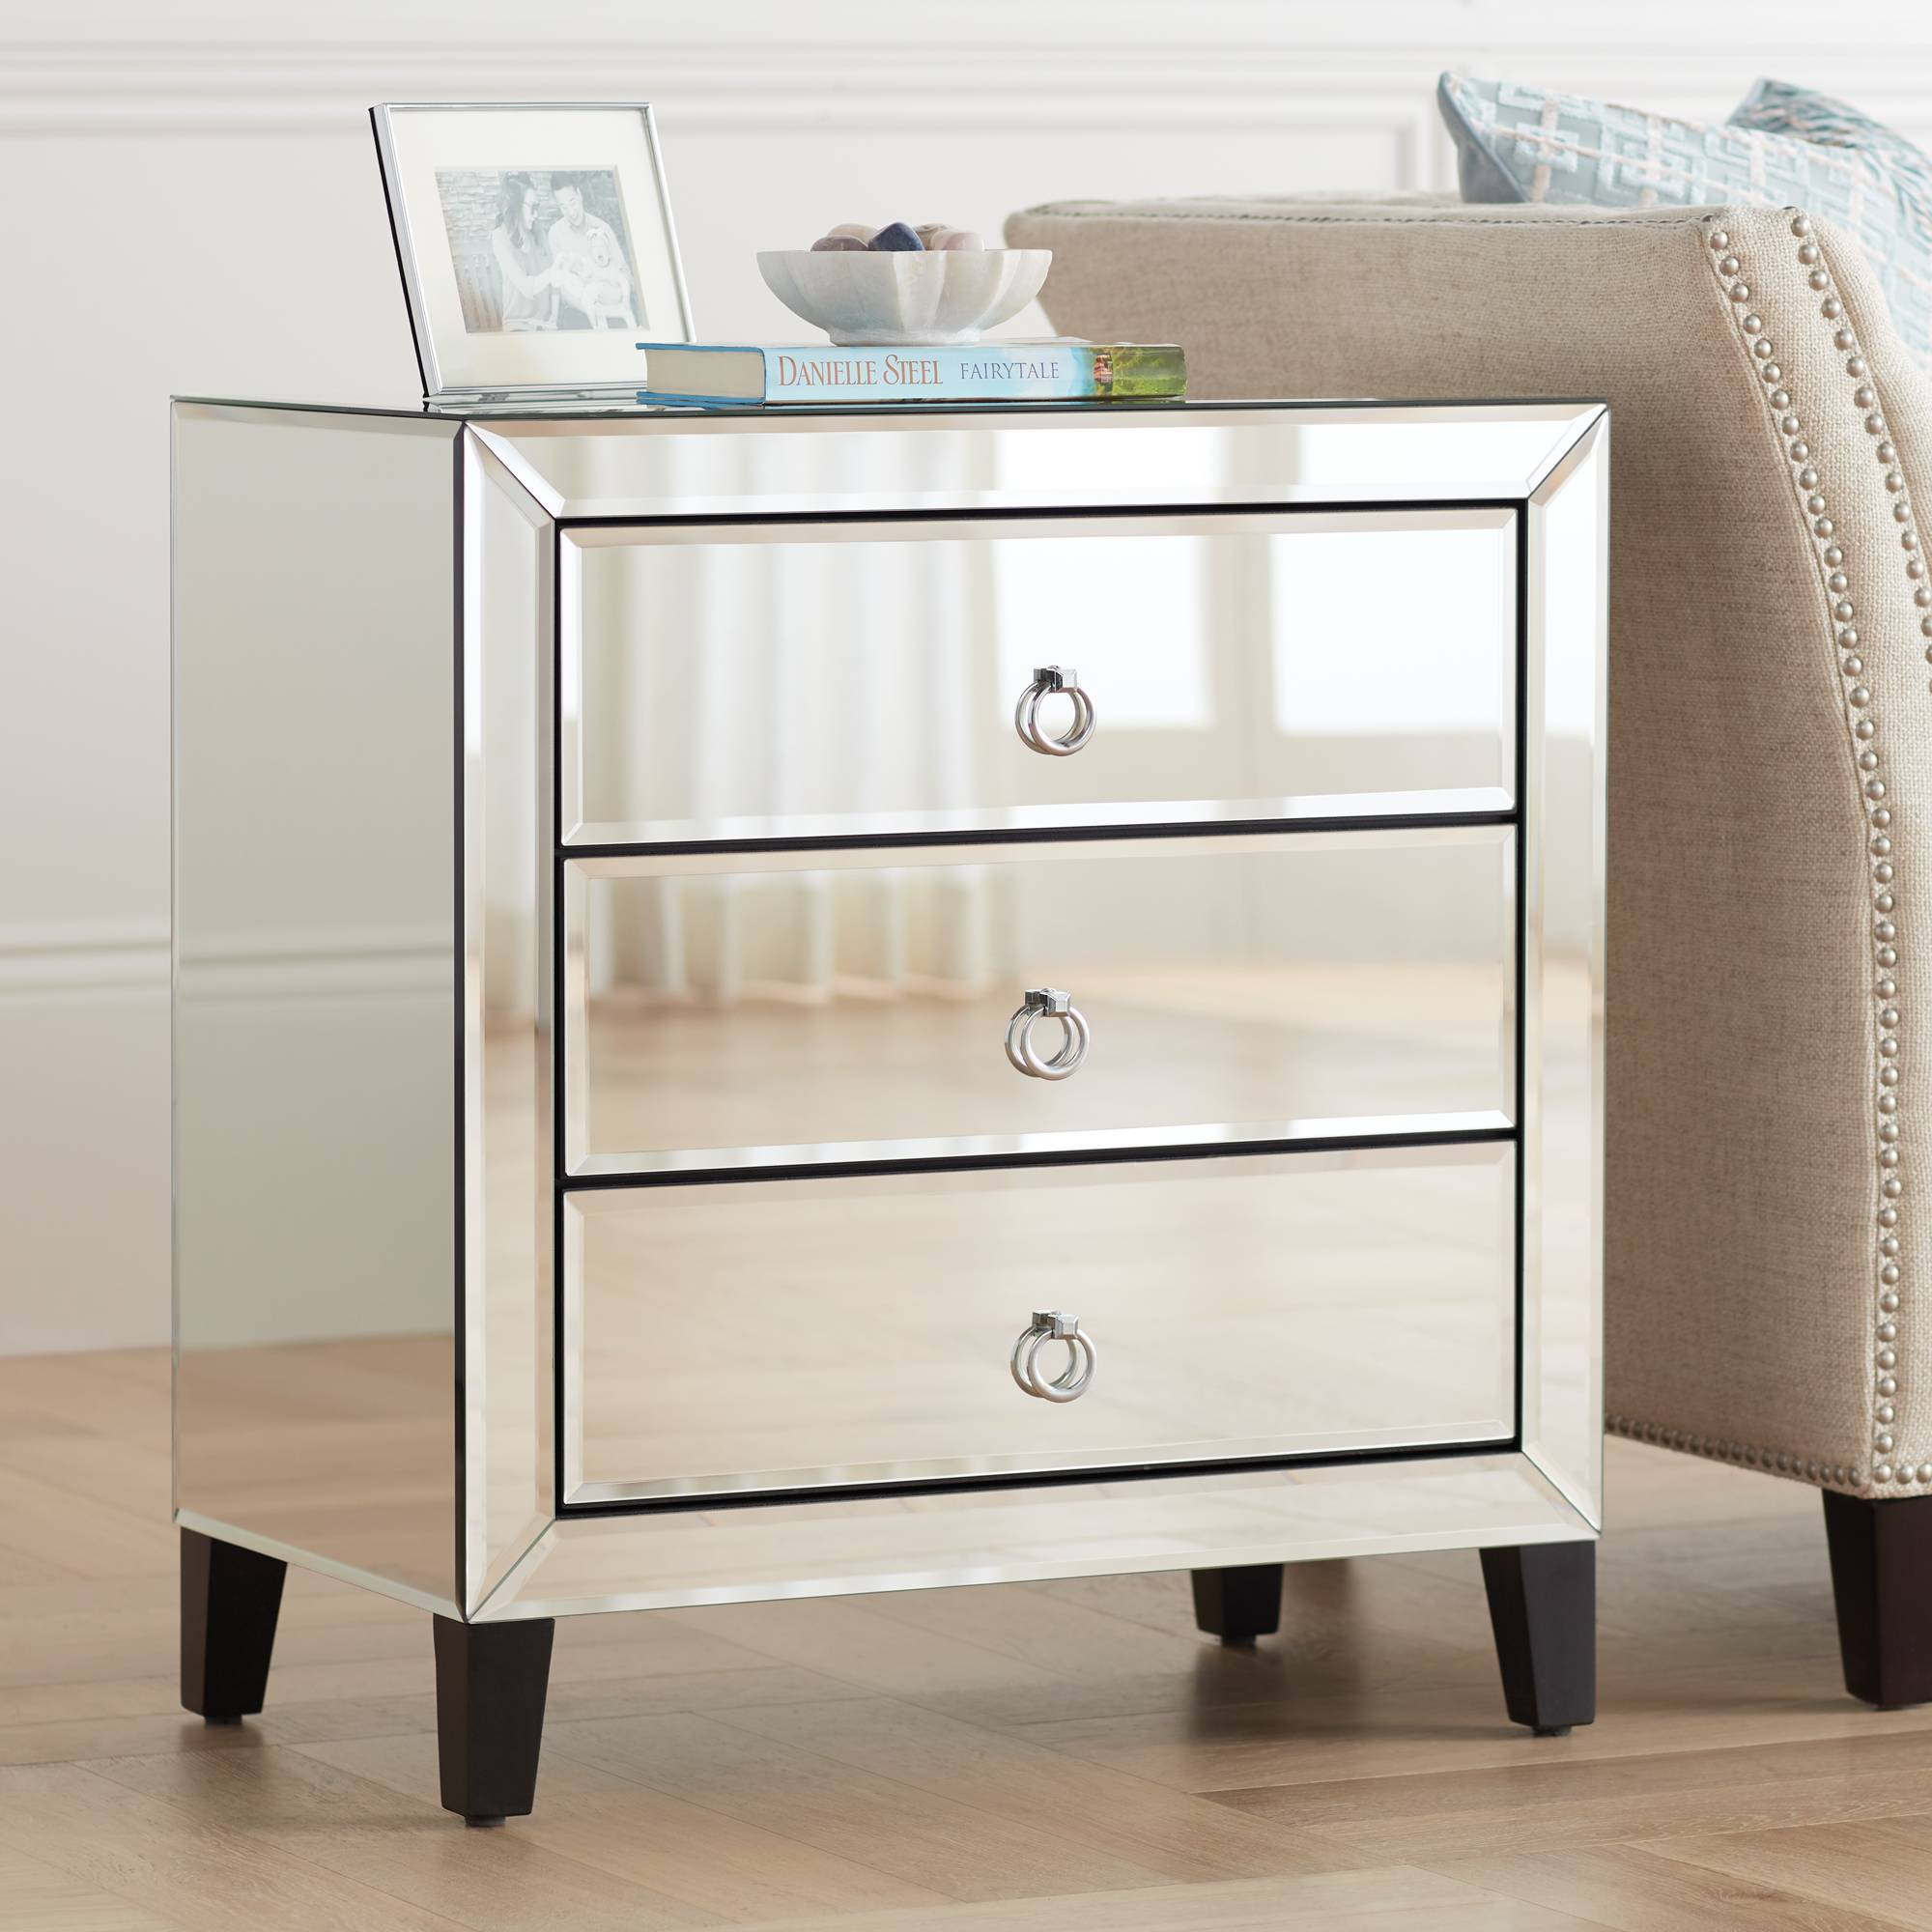 Details About Crestview Collection Bentley Beveled Mirrored 3 Drawer Chest